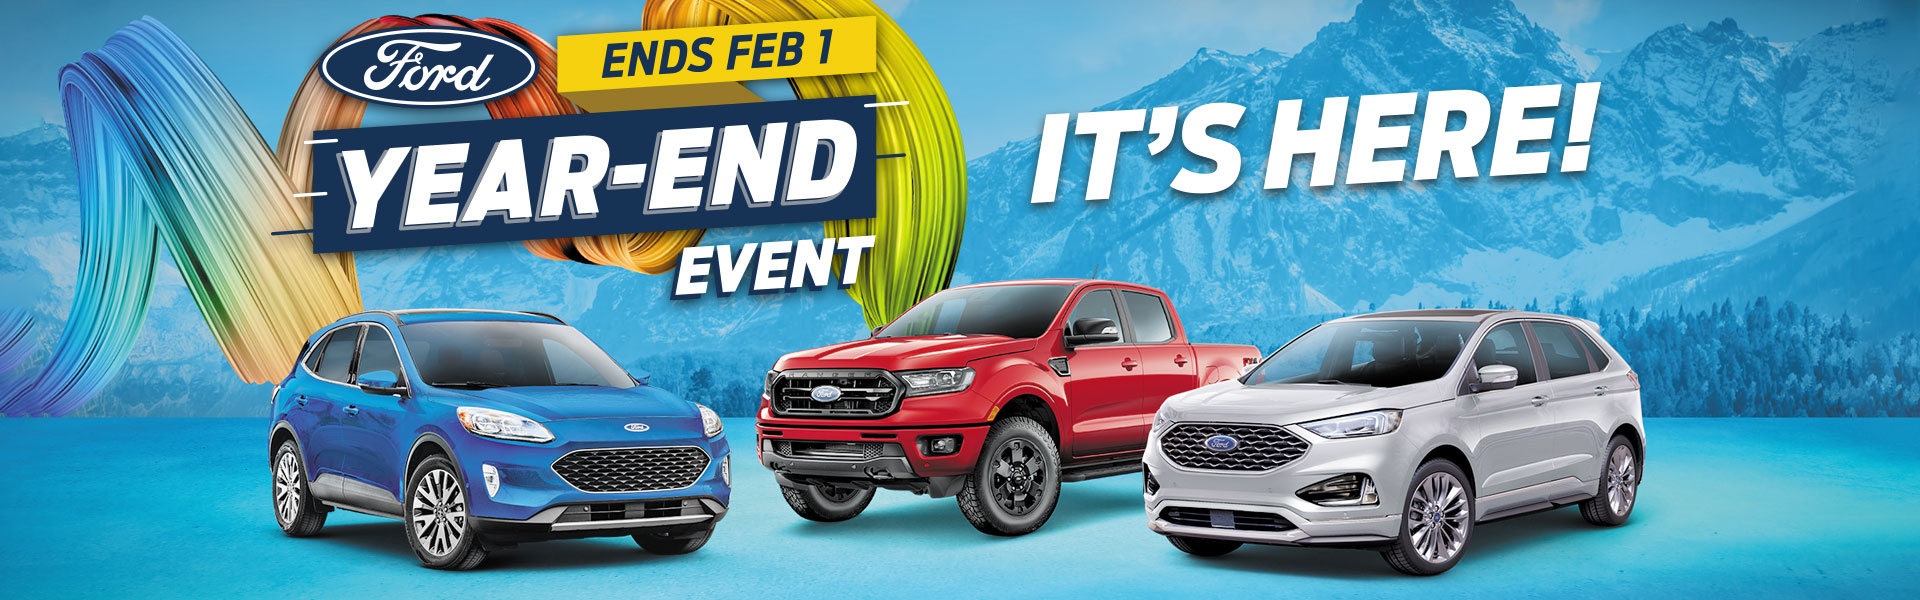 Ford Year End Event is Here!